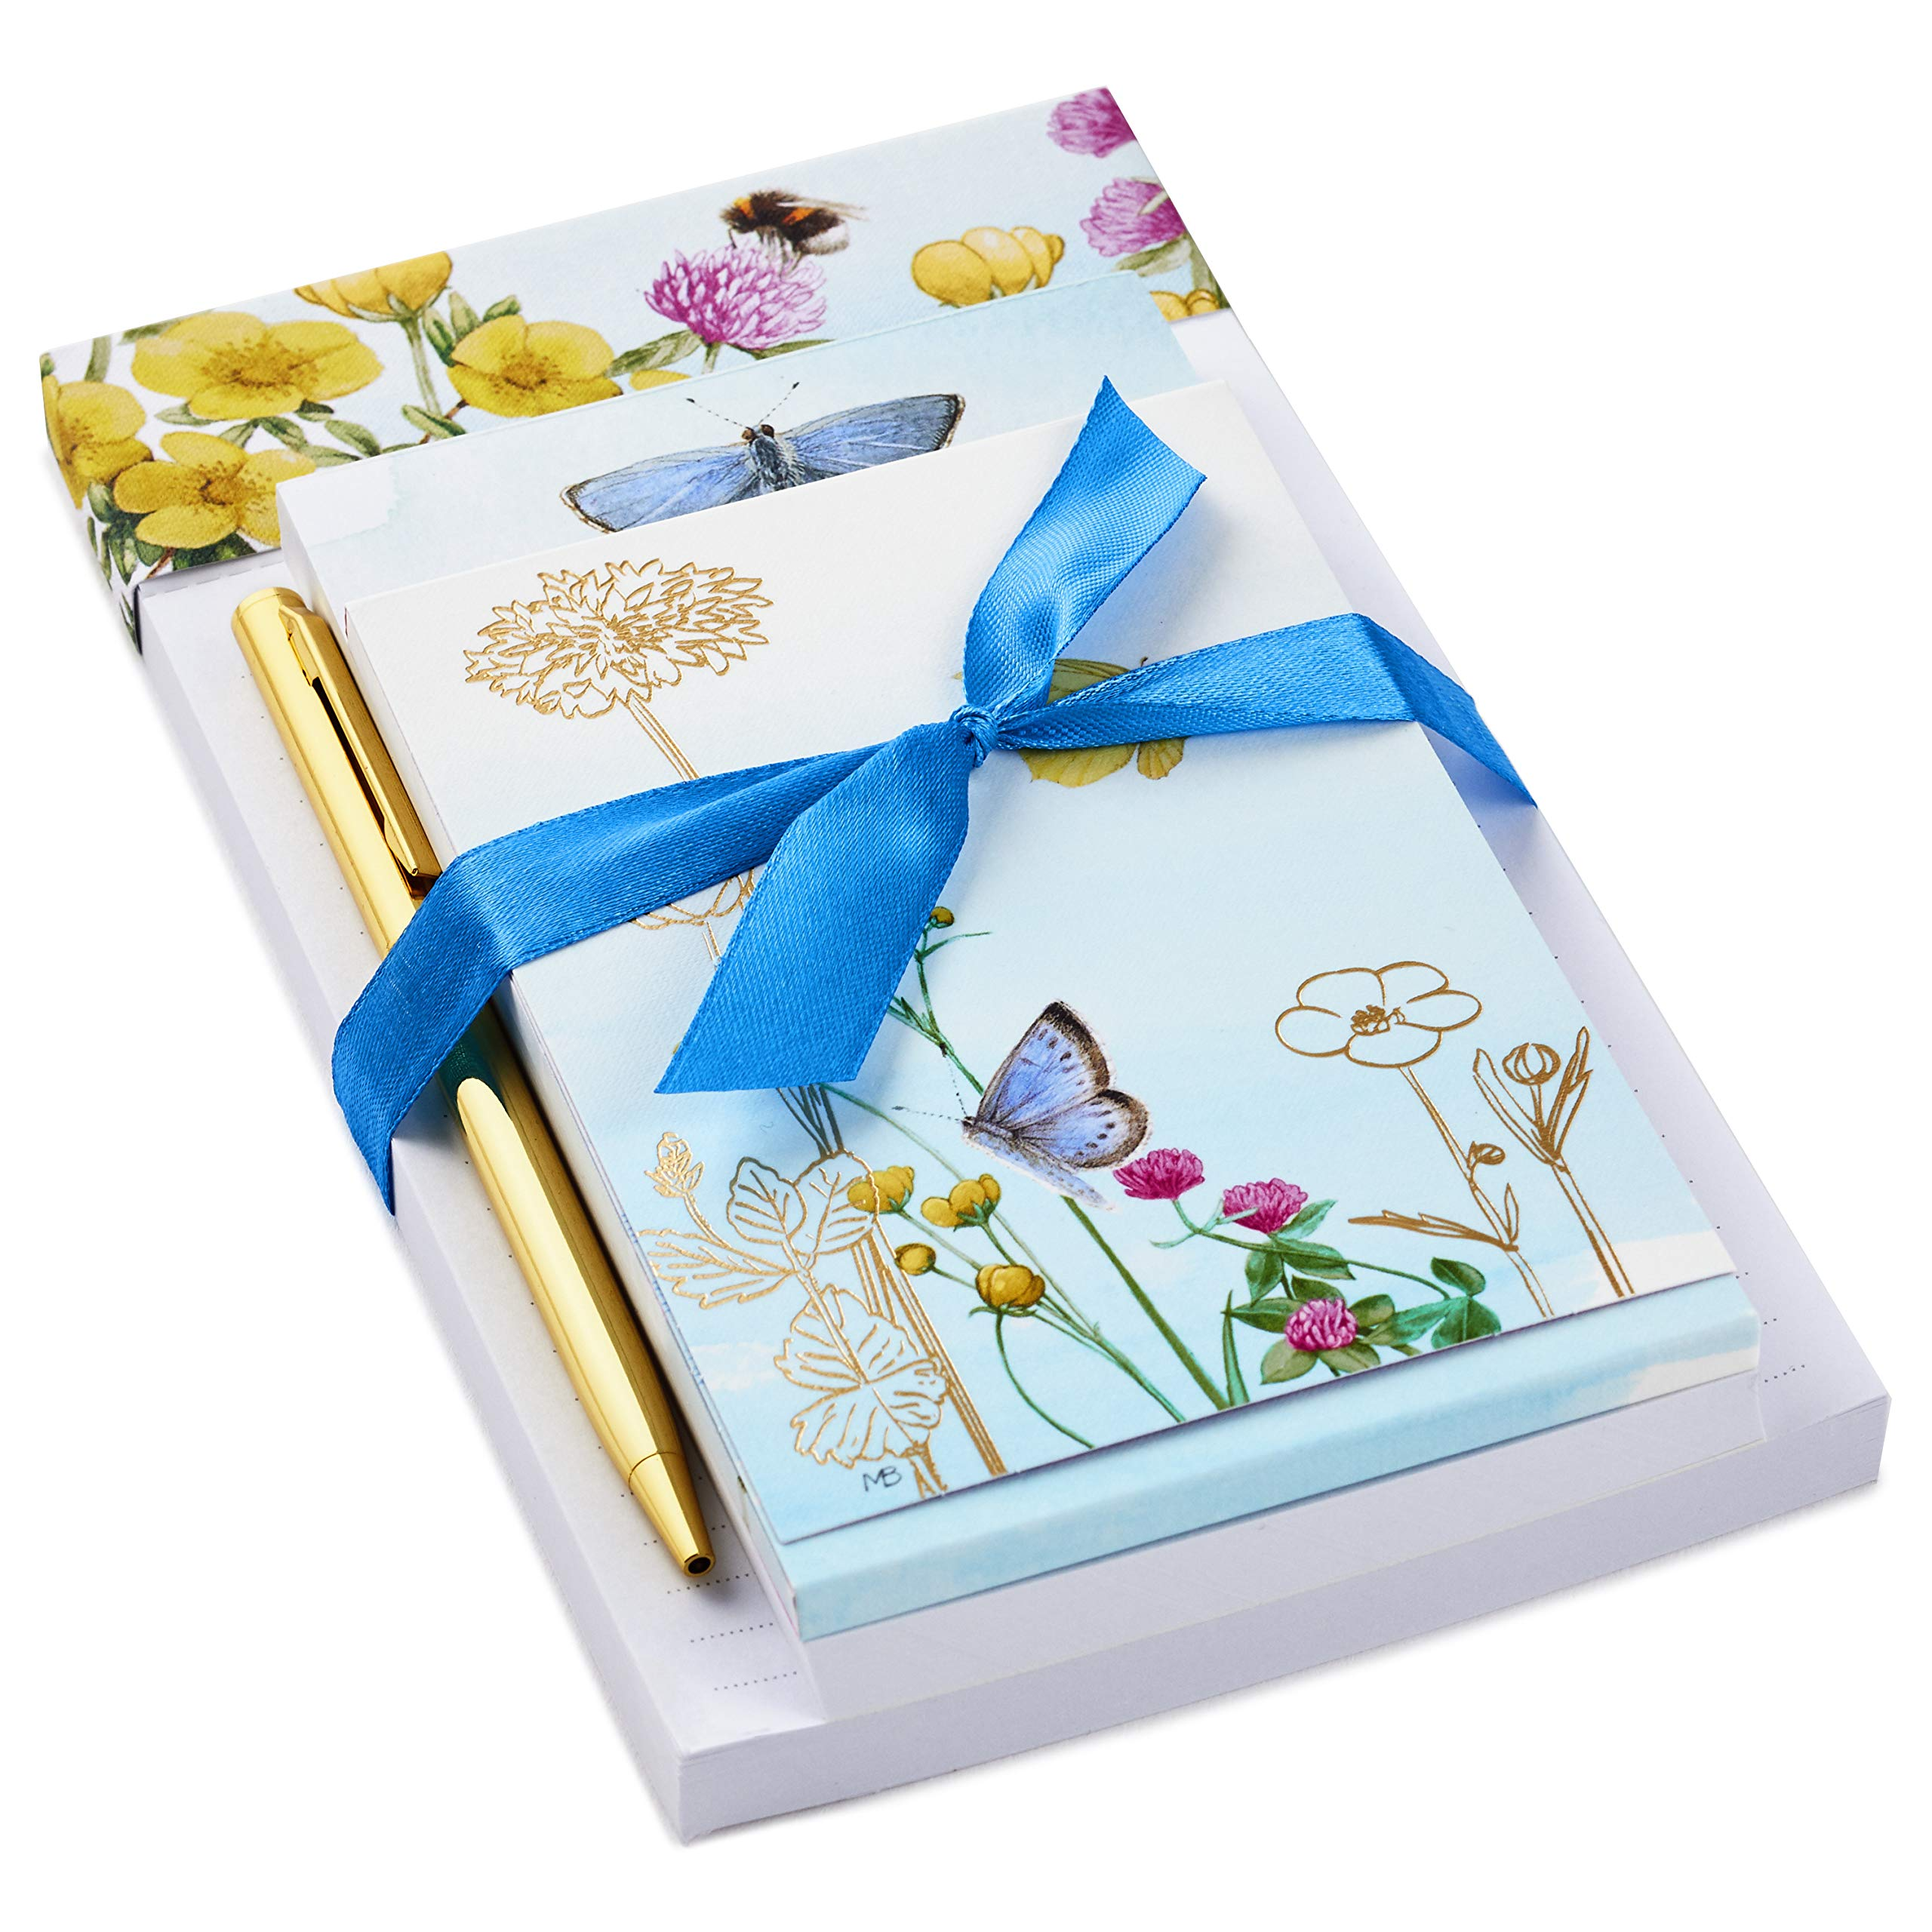 Hallmark Notepad Bundle with Pen, Marjolein Bastin Butterflies and Flowers (3 Notepads in Assorted Sizes with Gold Pen), (Model: 5STZ5084)